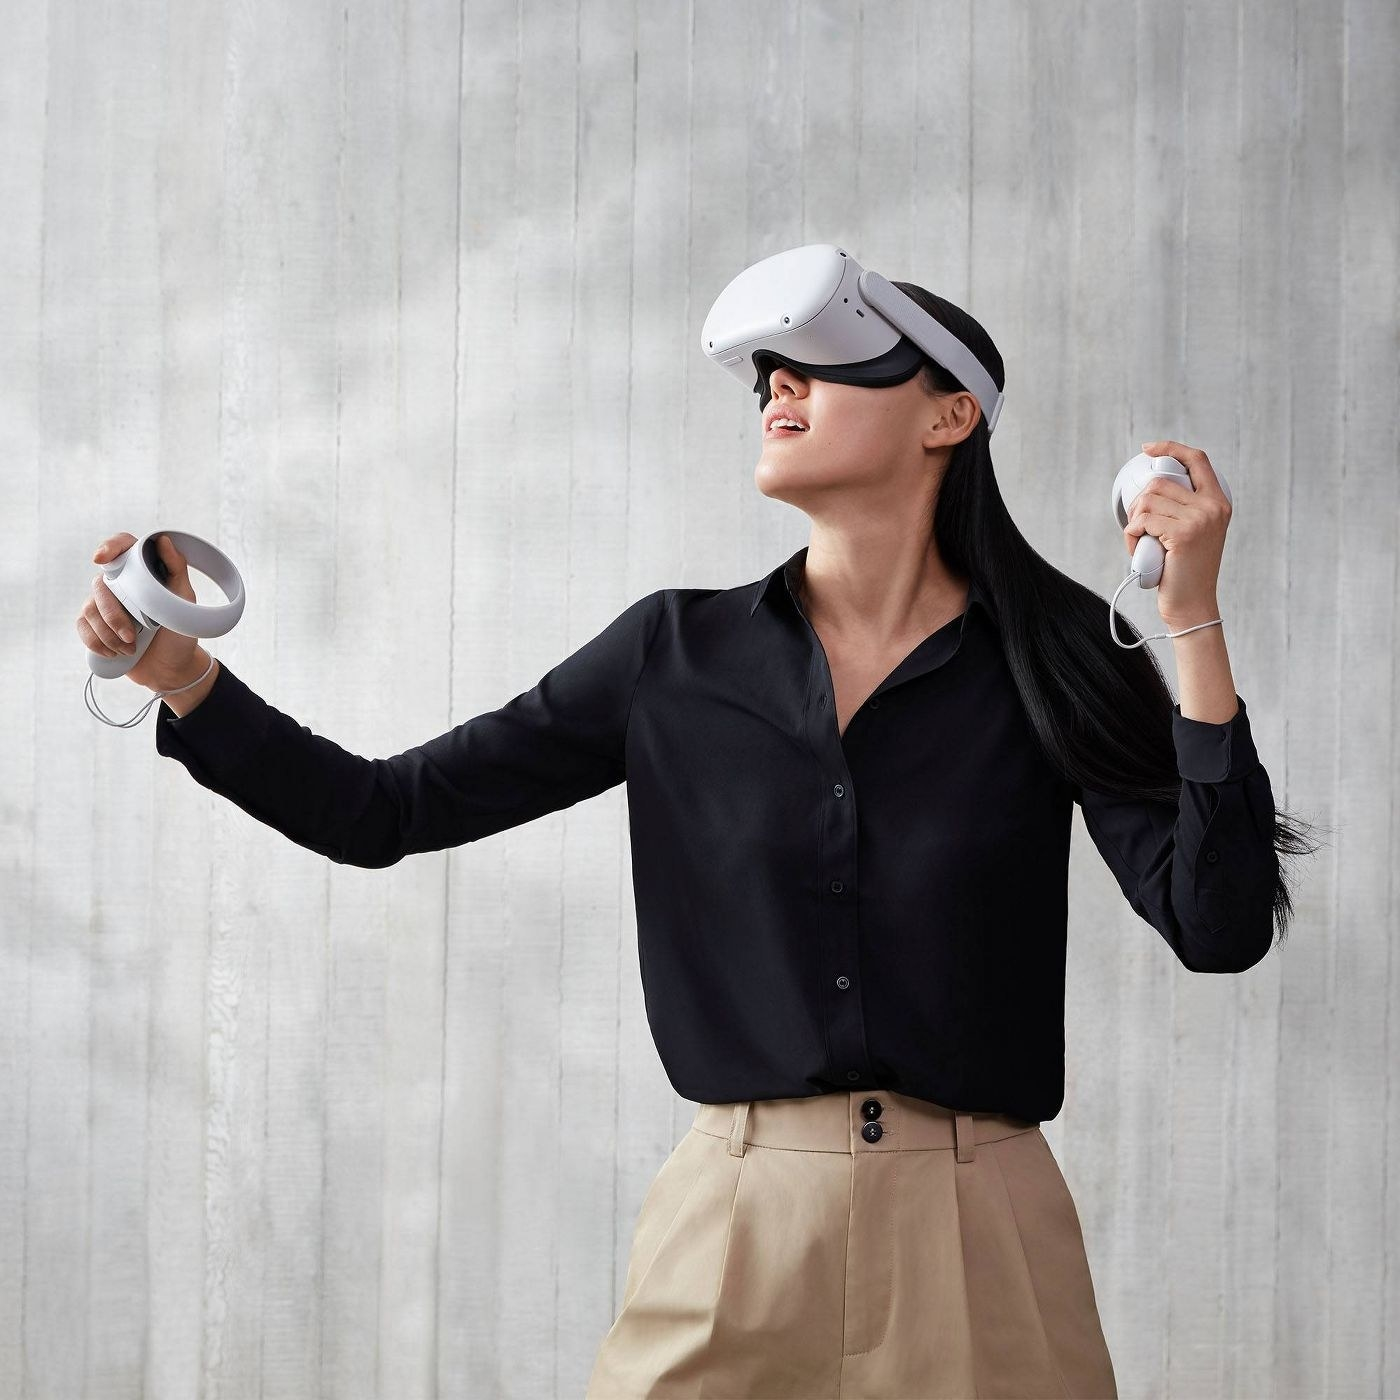 A woman using virtual reality goggles